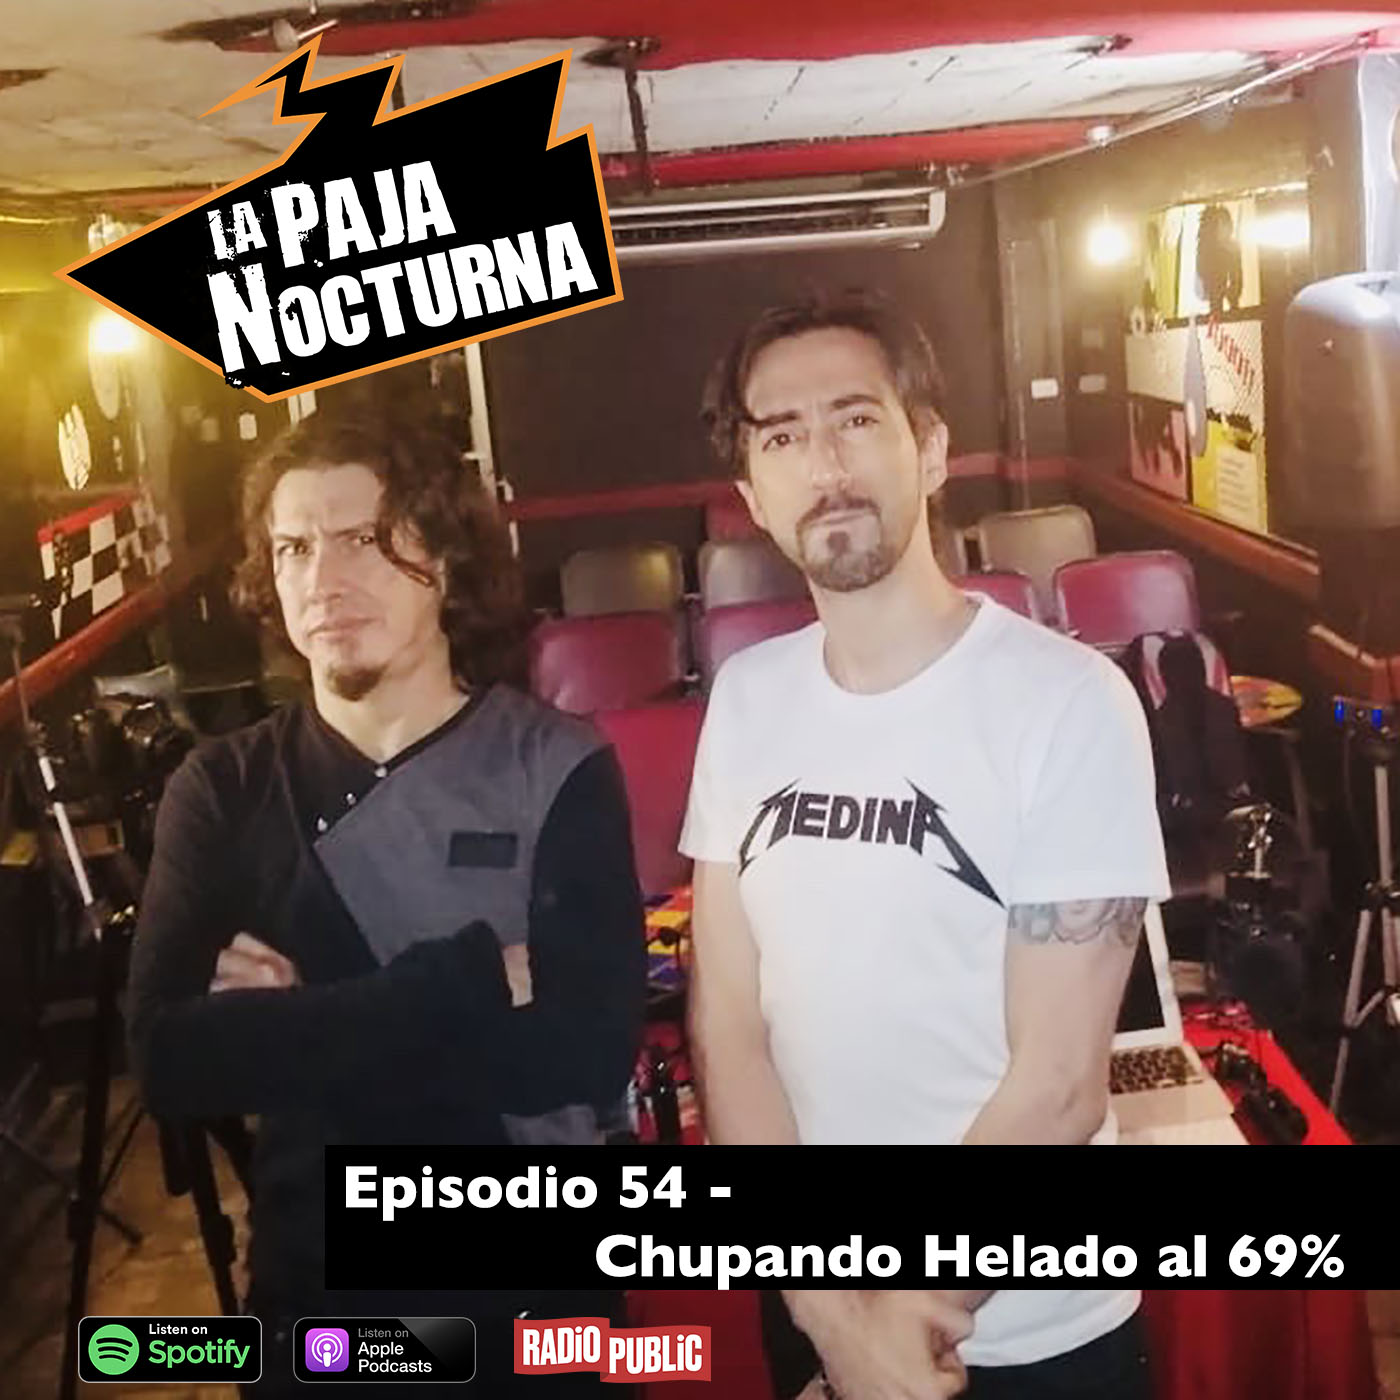 La paja nocturna podcast Episodio 54